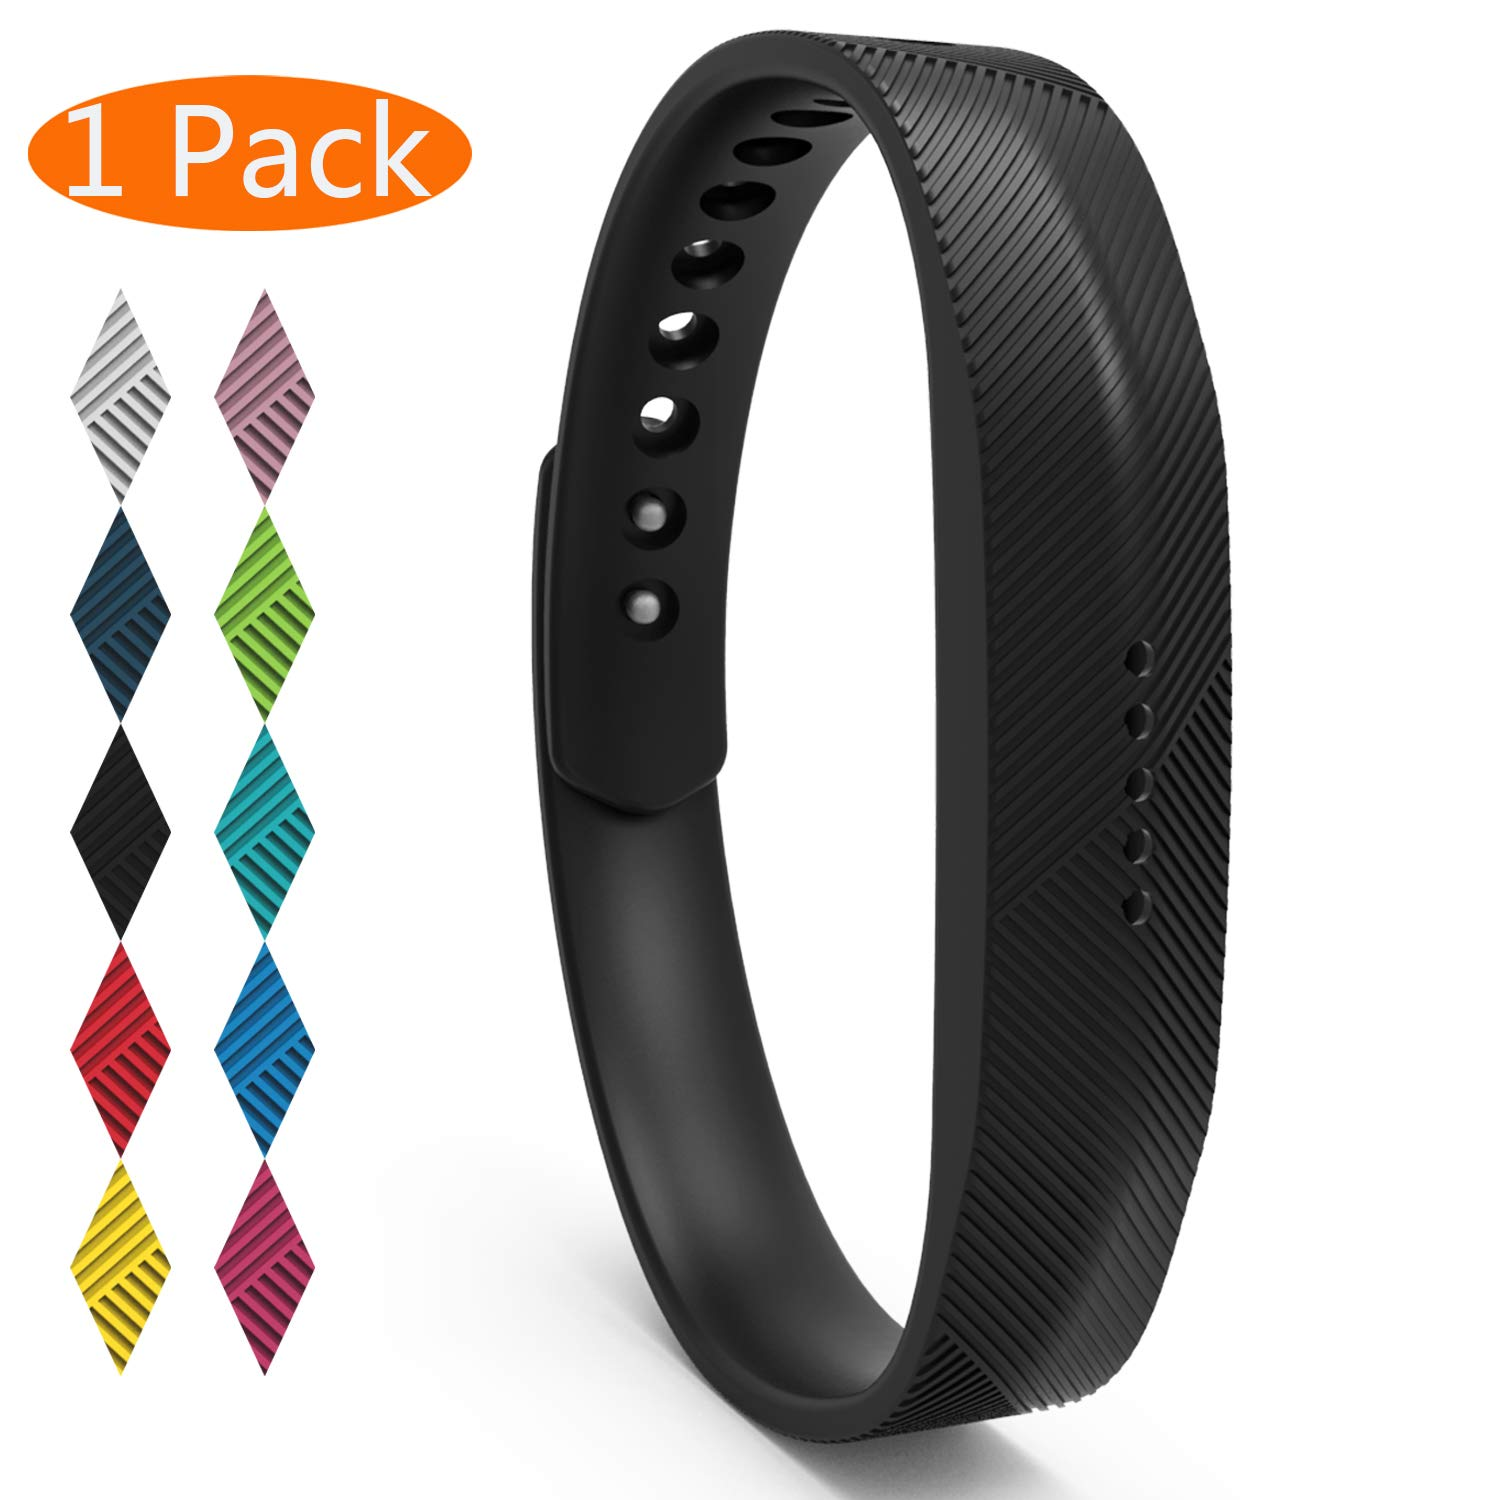 Replacement Sports Wrist Band Strap Clasp For Fitbit Flex 2 Bracelet Large,Small